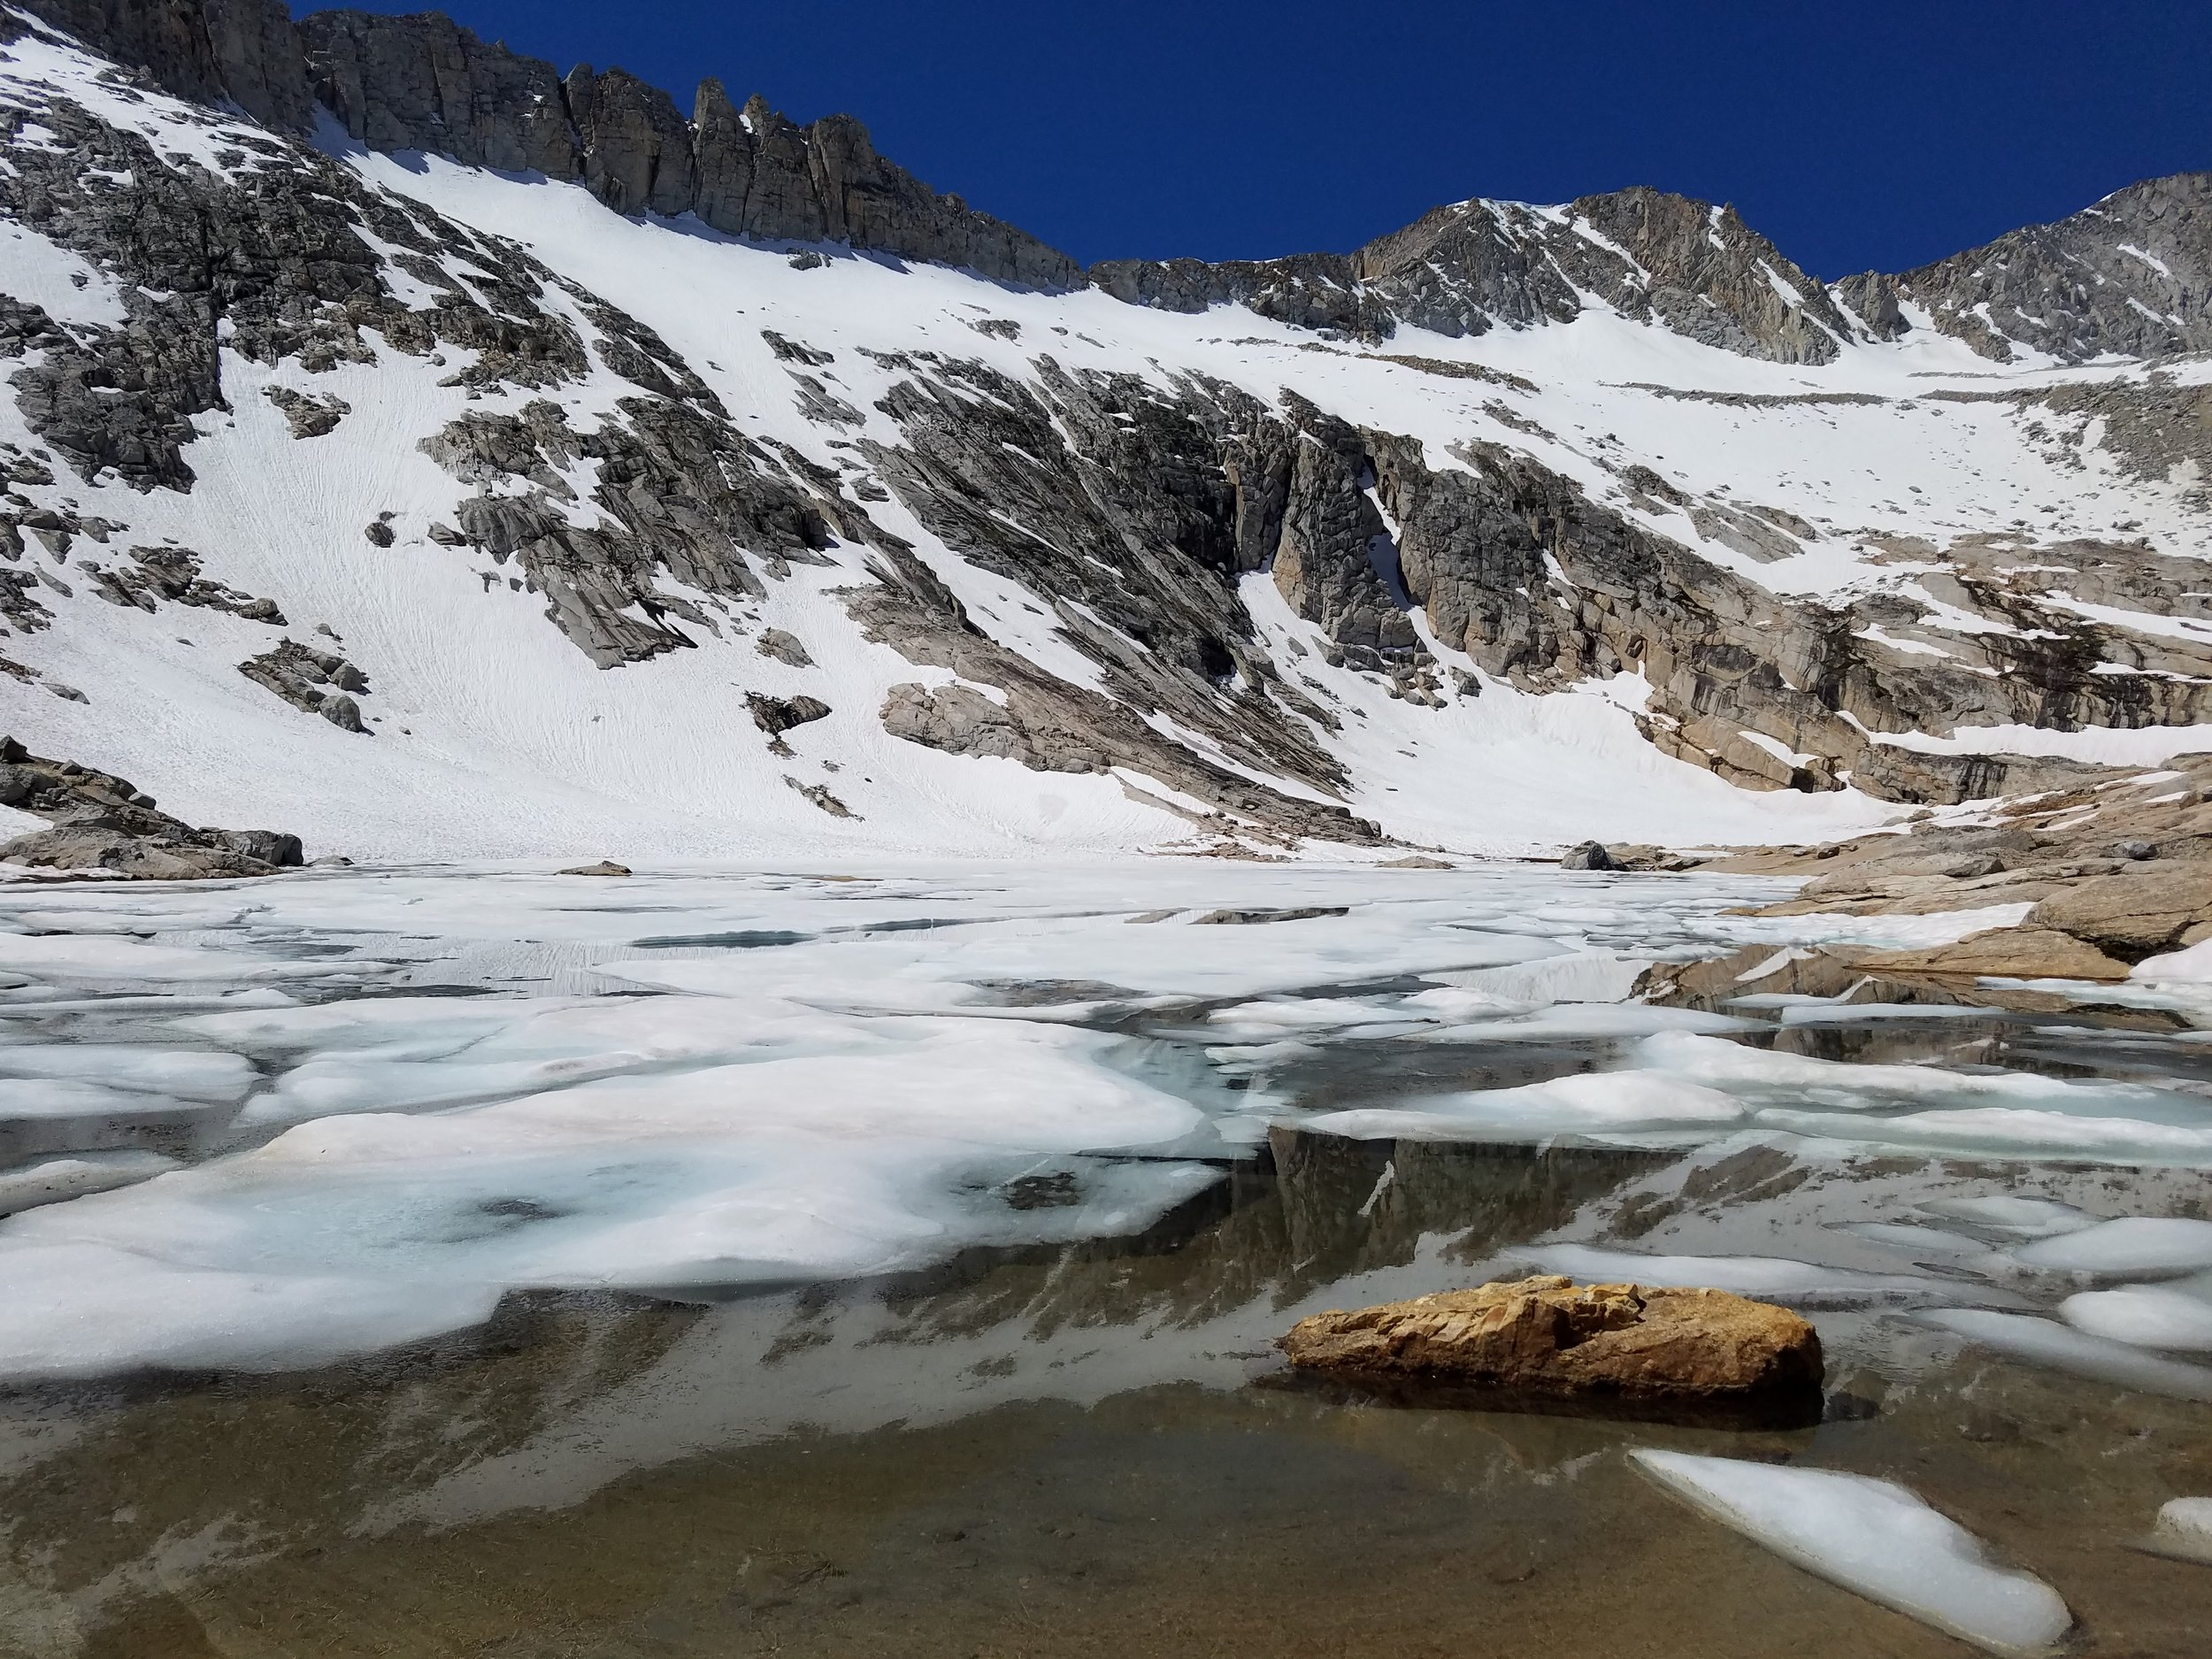 Saddlebag Lakes-  Directions: Take Highway 120, Tioga Pass Road, about 12 miles from the junction of Highway 395 to Saddlebag Lake Road. Follow the road for approximately three miles to the lake.